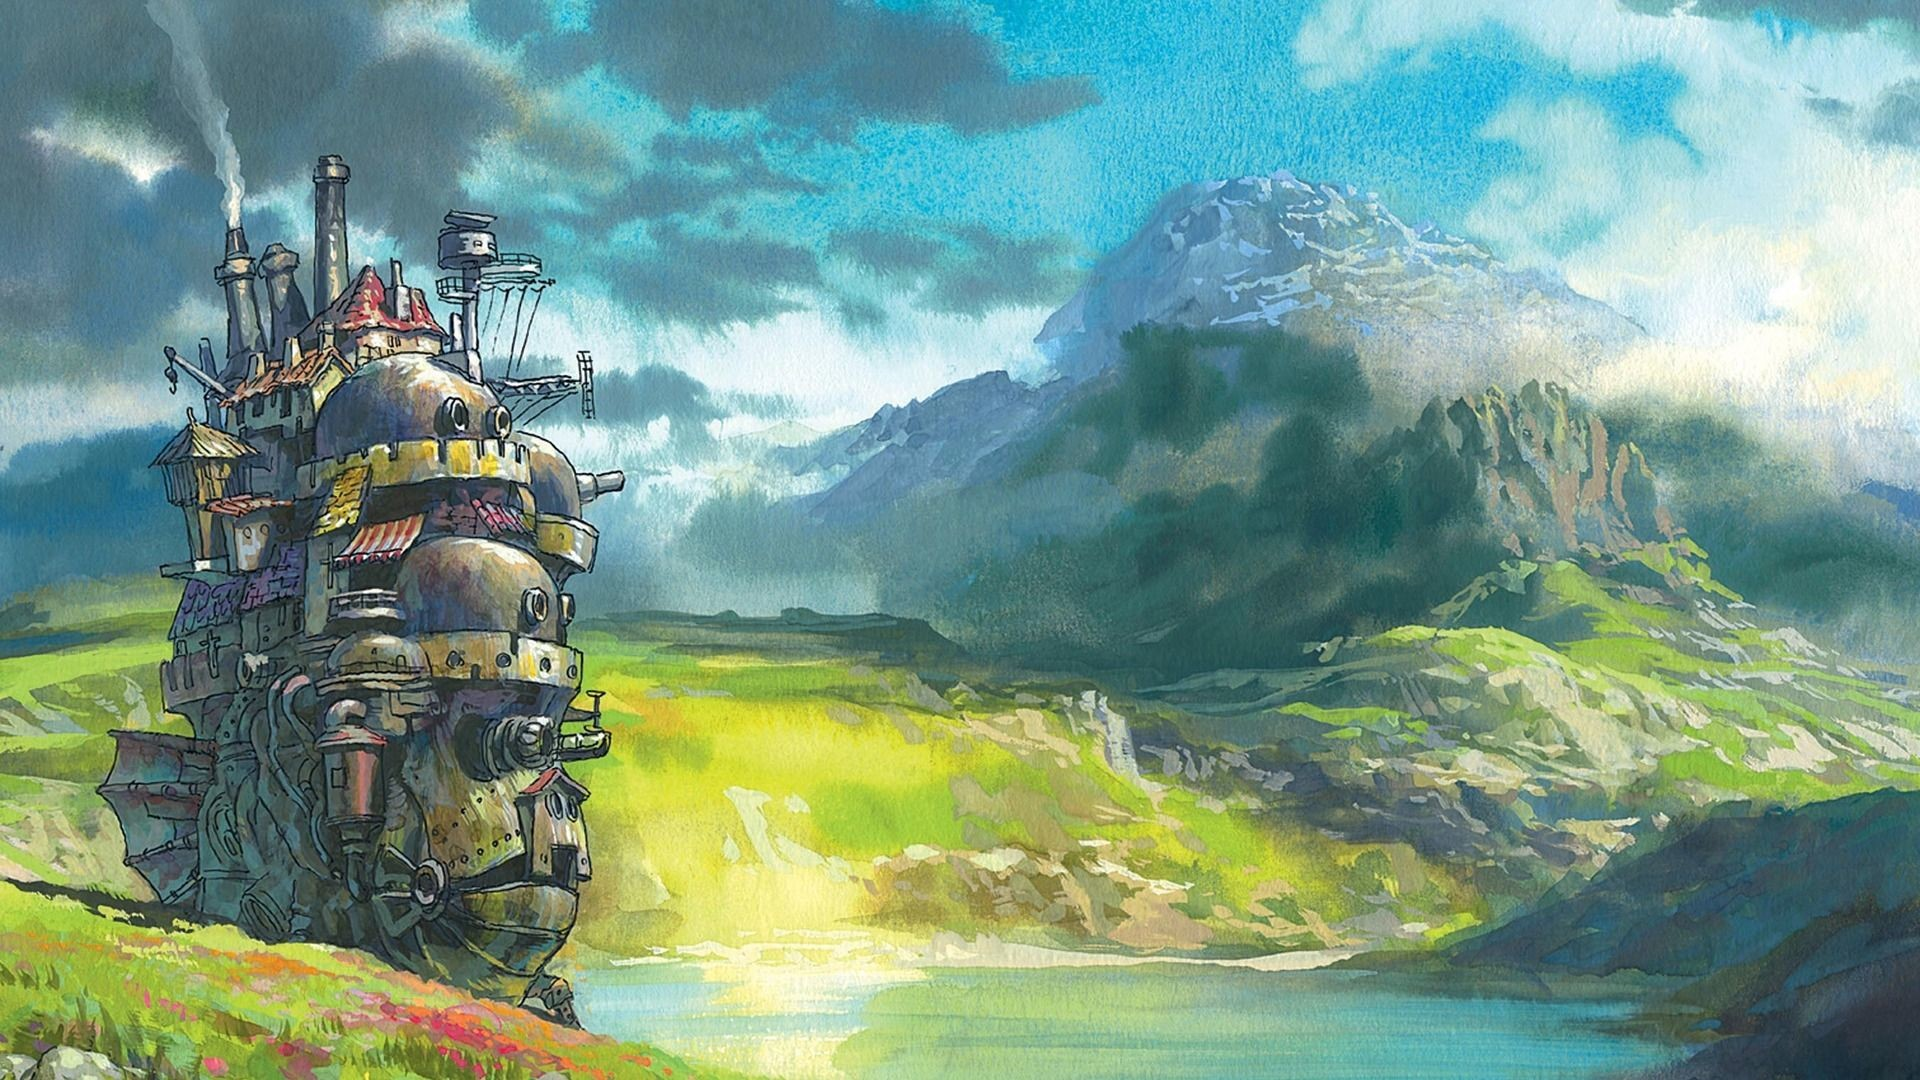 Studio Ghibli Wallpaper Hd 72 Images